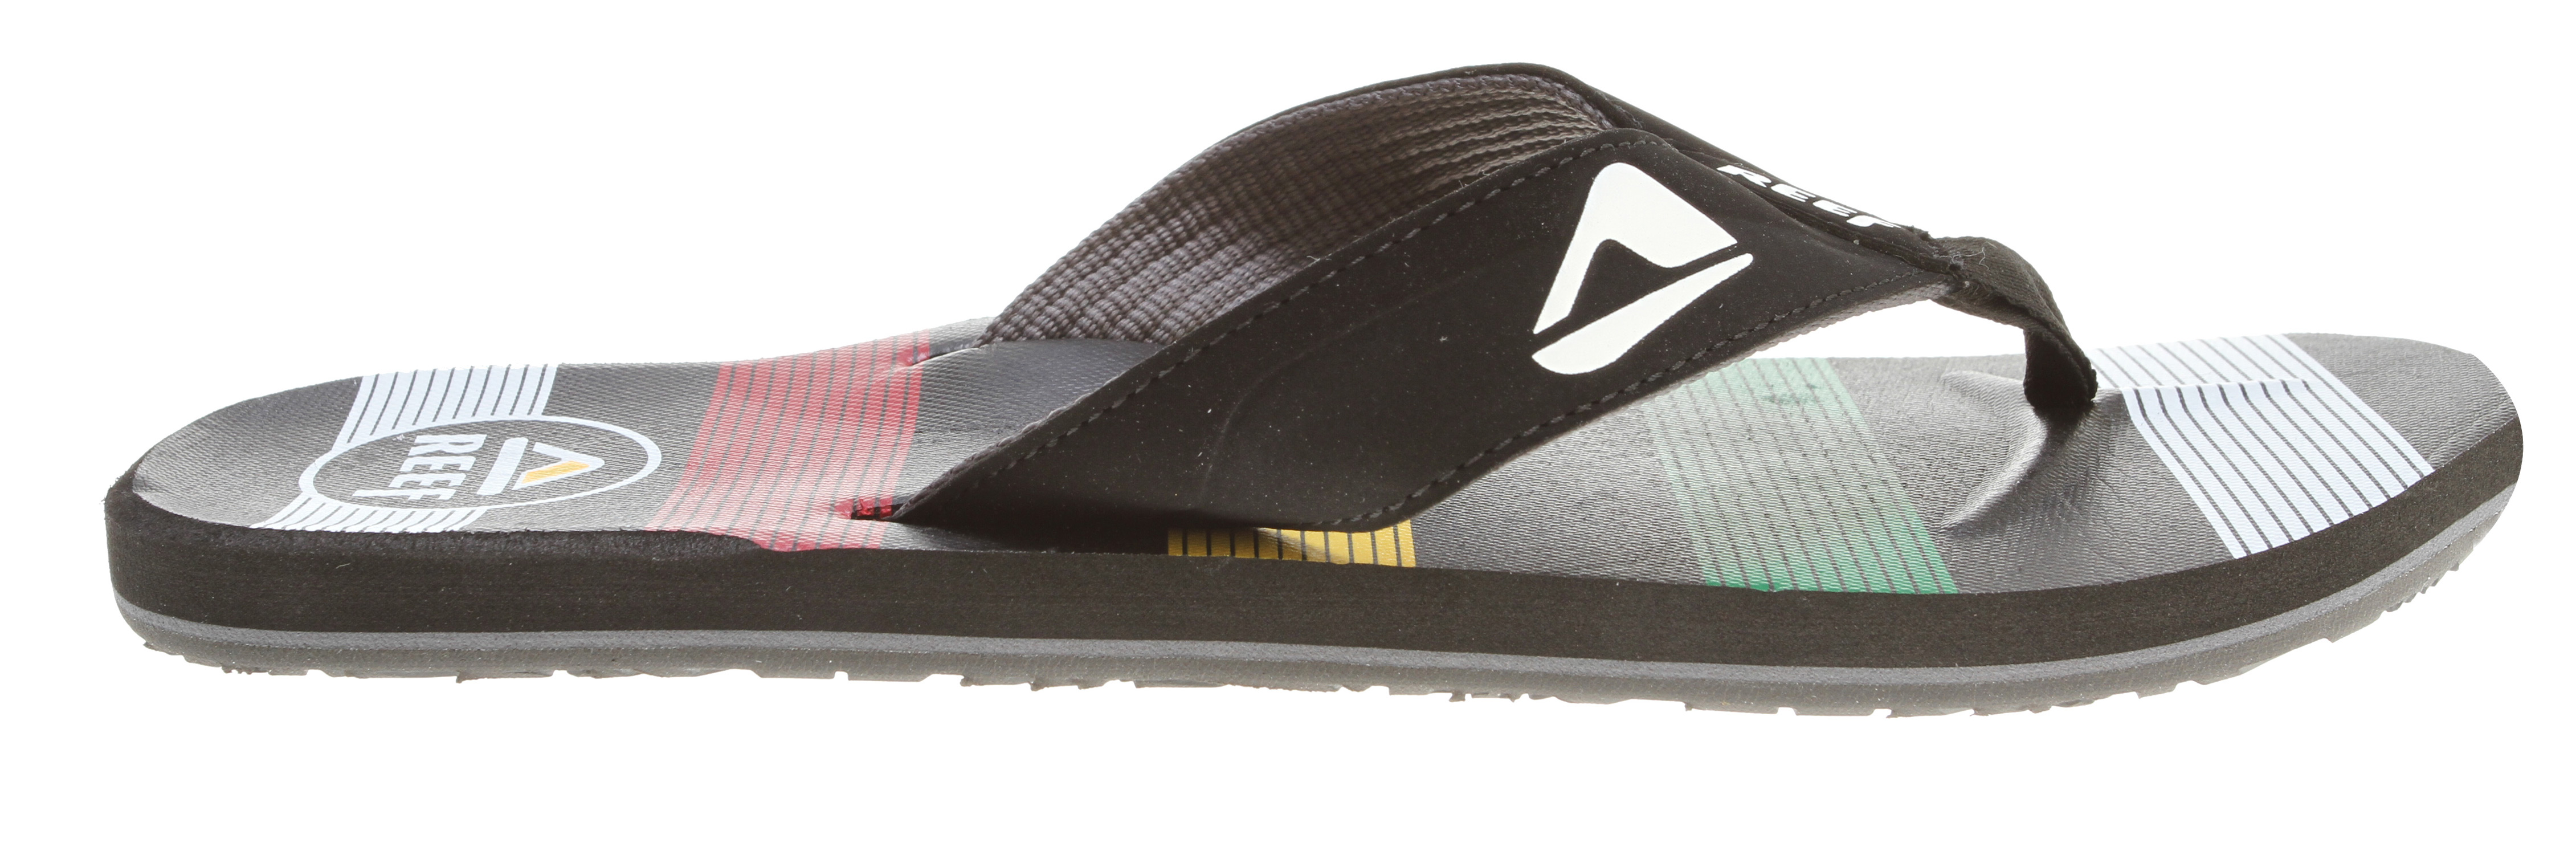 Surf Key Features of the Reef HT Prints Sandals: Soft, comfortable, water friendly synthetic nubuck upper Soft reef polyester woven lining Printed footbed design details Contoured eva footbed with anatomical arch support Grippy molded reef rubber outsole - $19.95